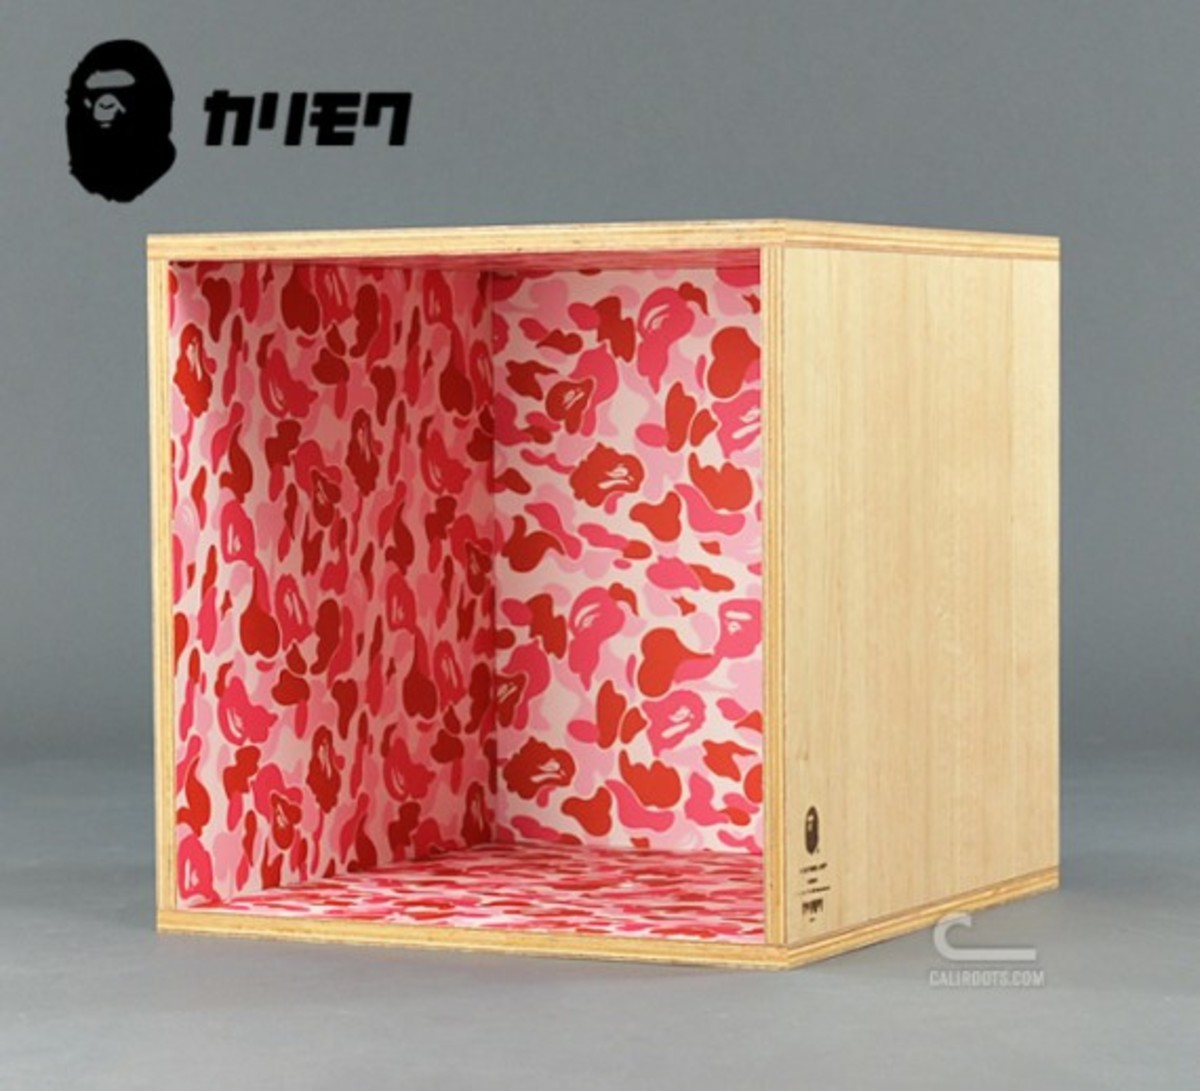 a-bathing-ape-medicom-toy-karimoku-bape-camo-furniture-08